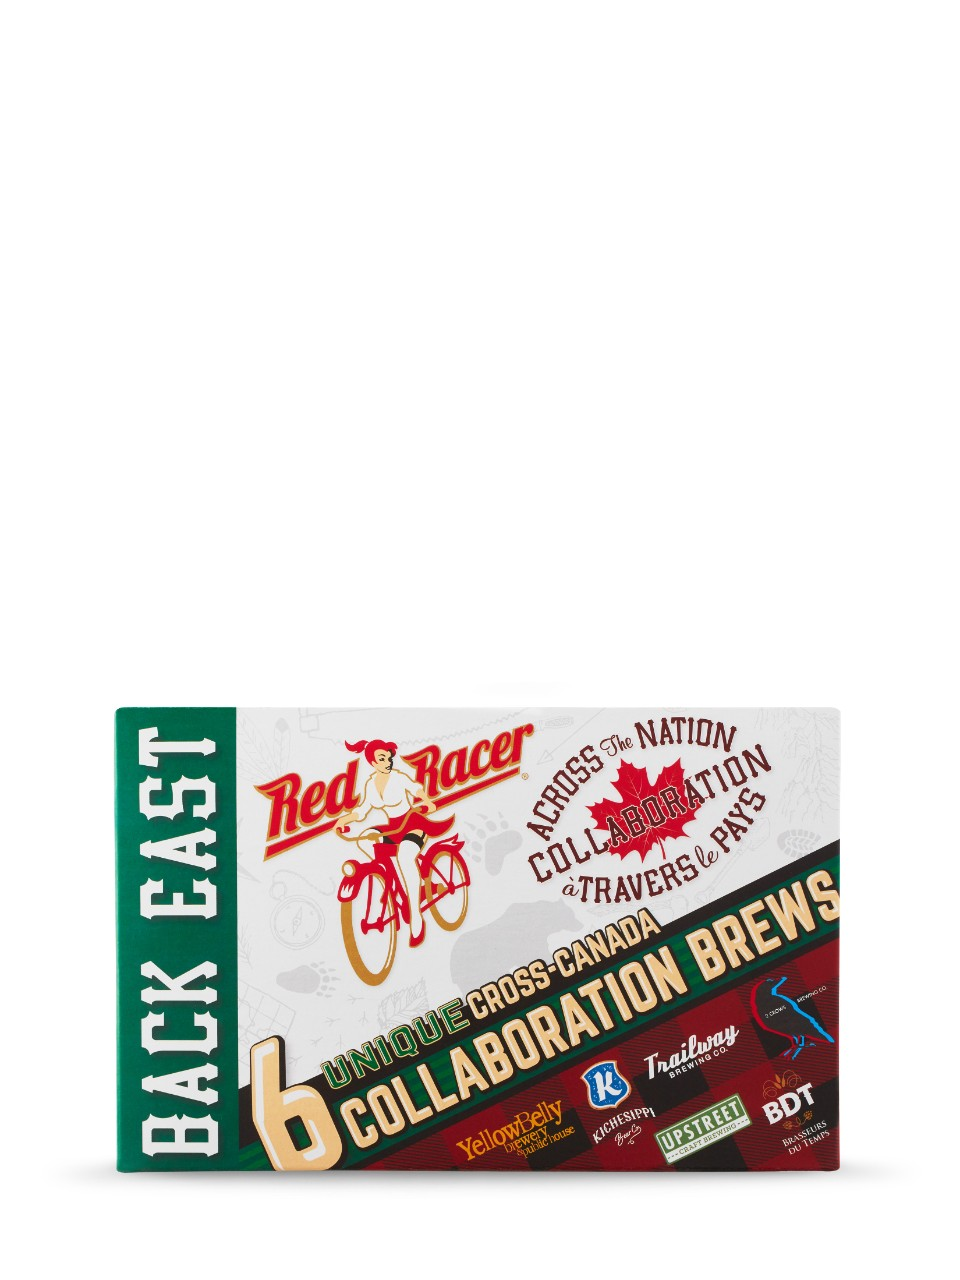 Image for Red Racer Across the Nation Collaboration East from LCBO